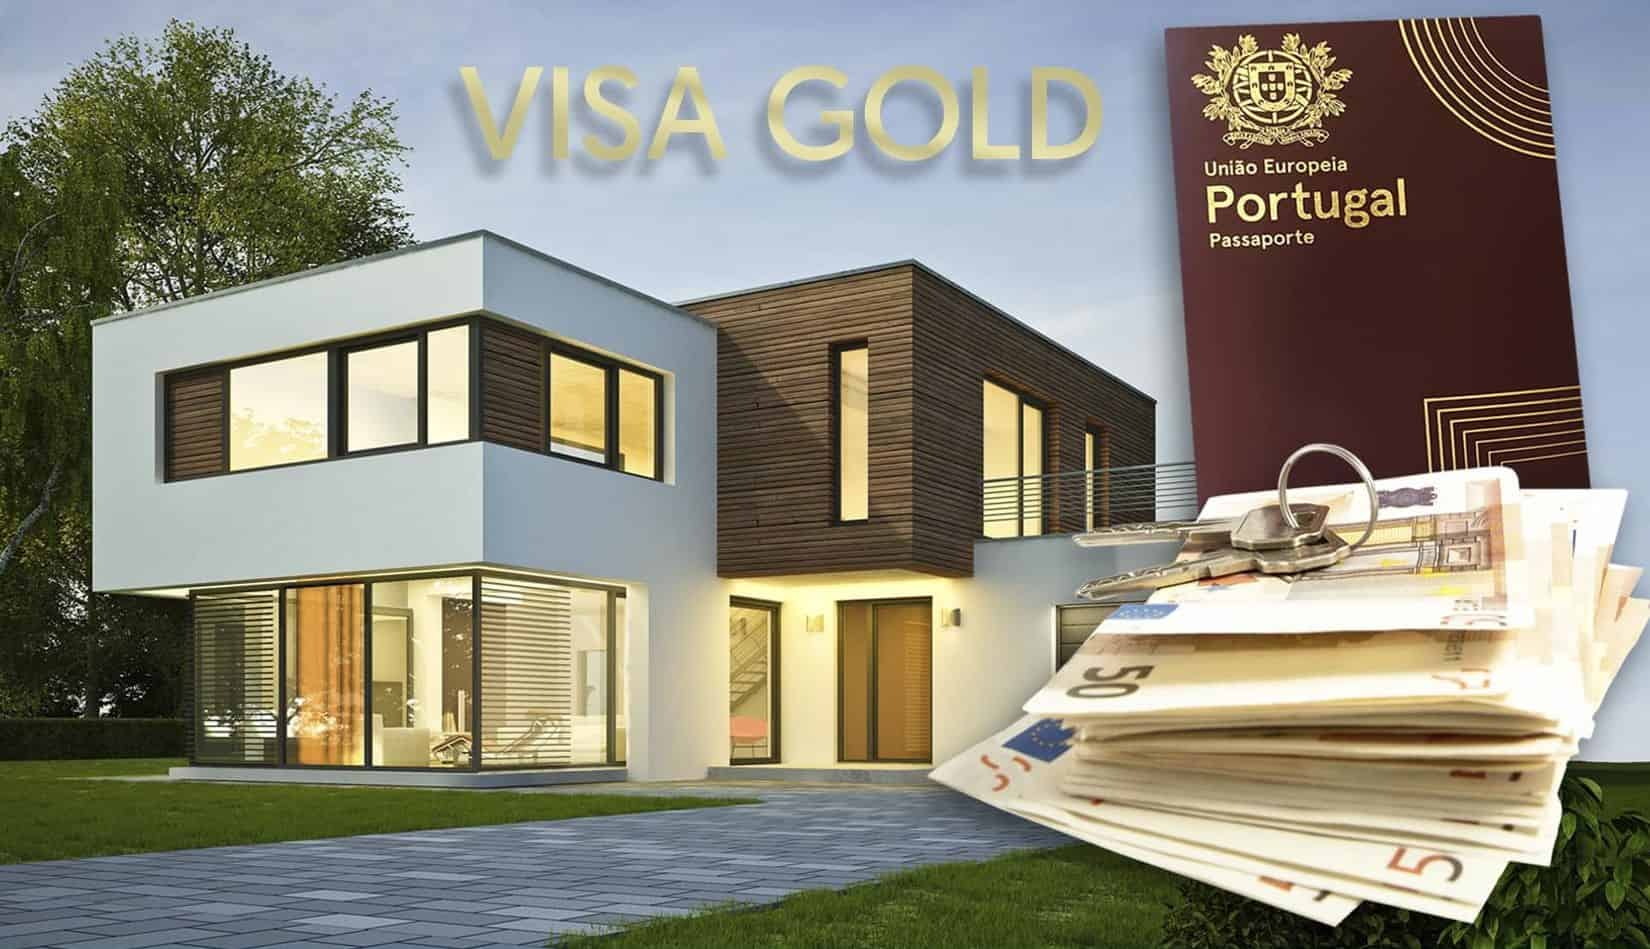 achat immobilier portugal golden visa